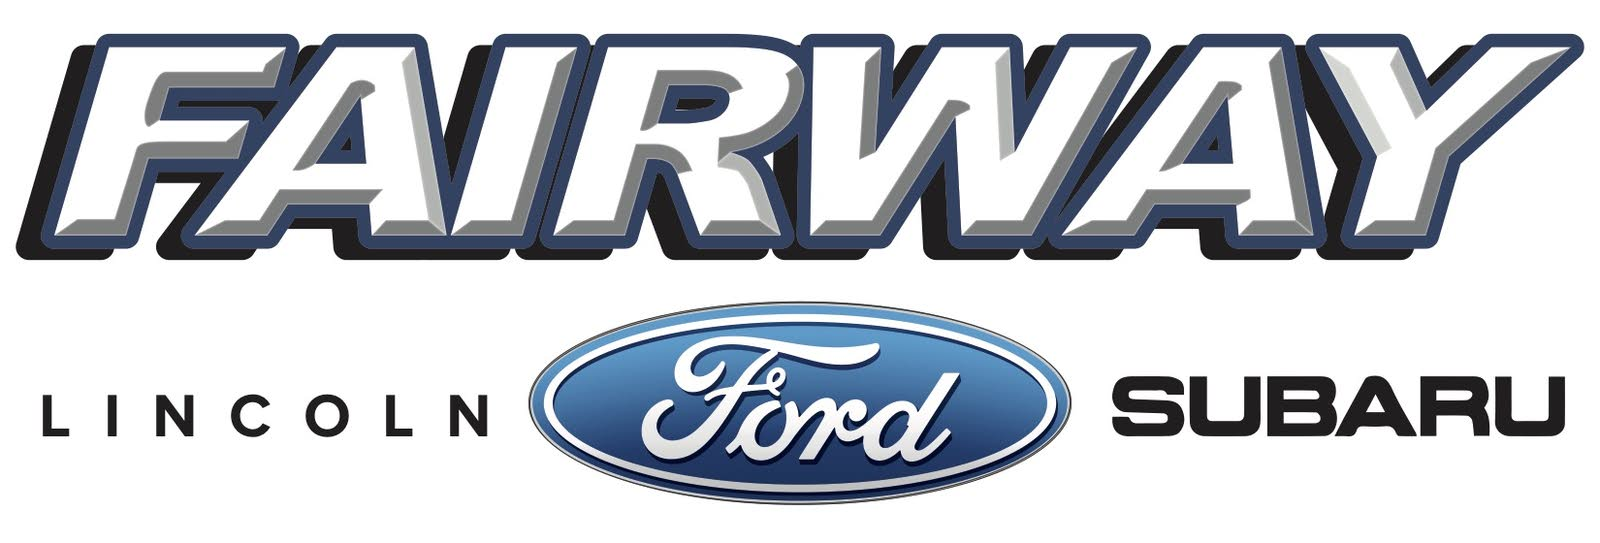 Fairway Ford Greenville Sc >> Fairway Ford Lincoln Subaru Greenville Sc Read Consumer